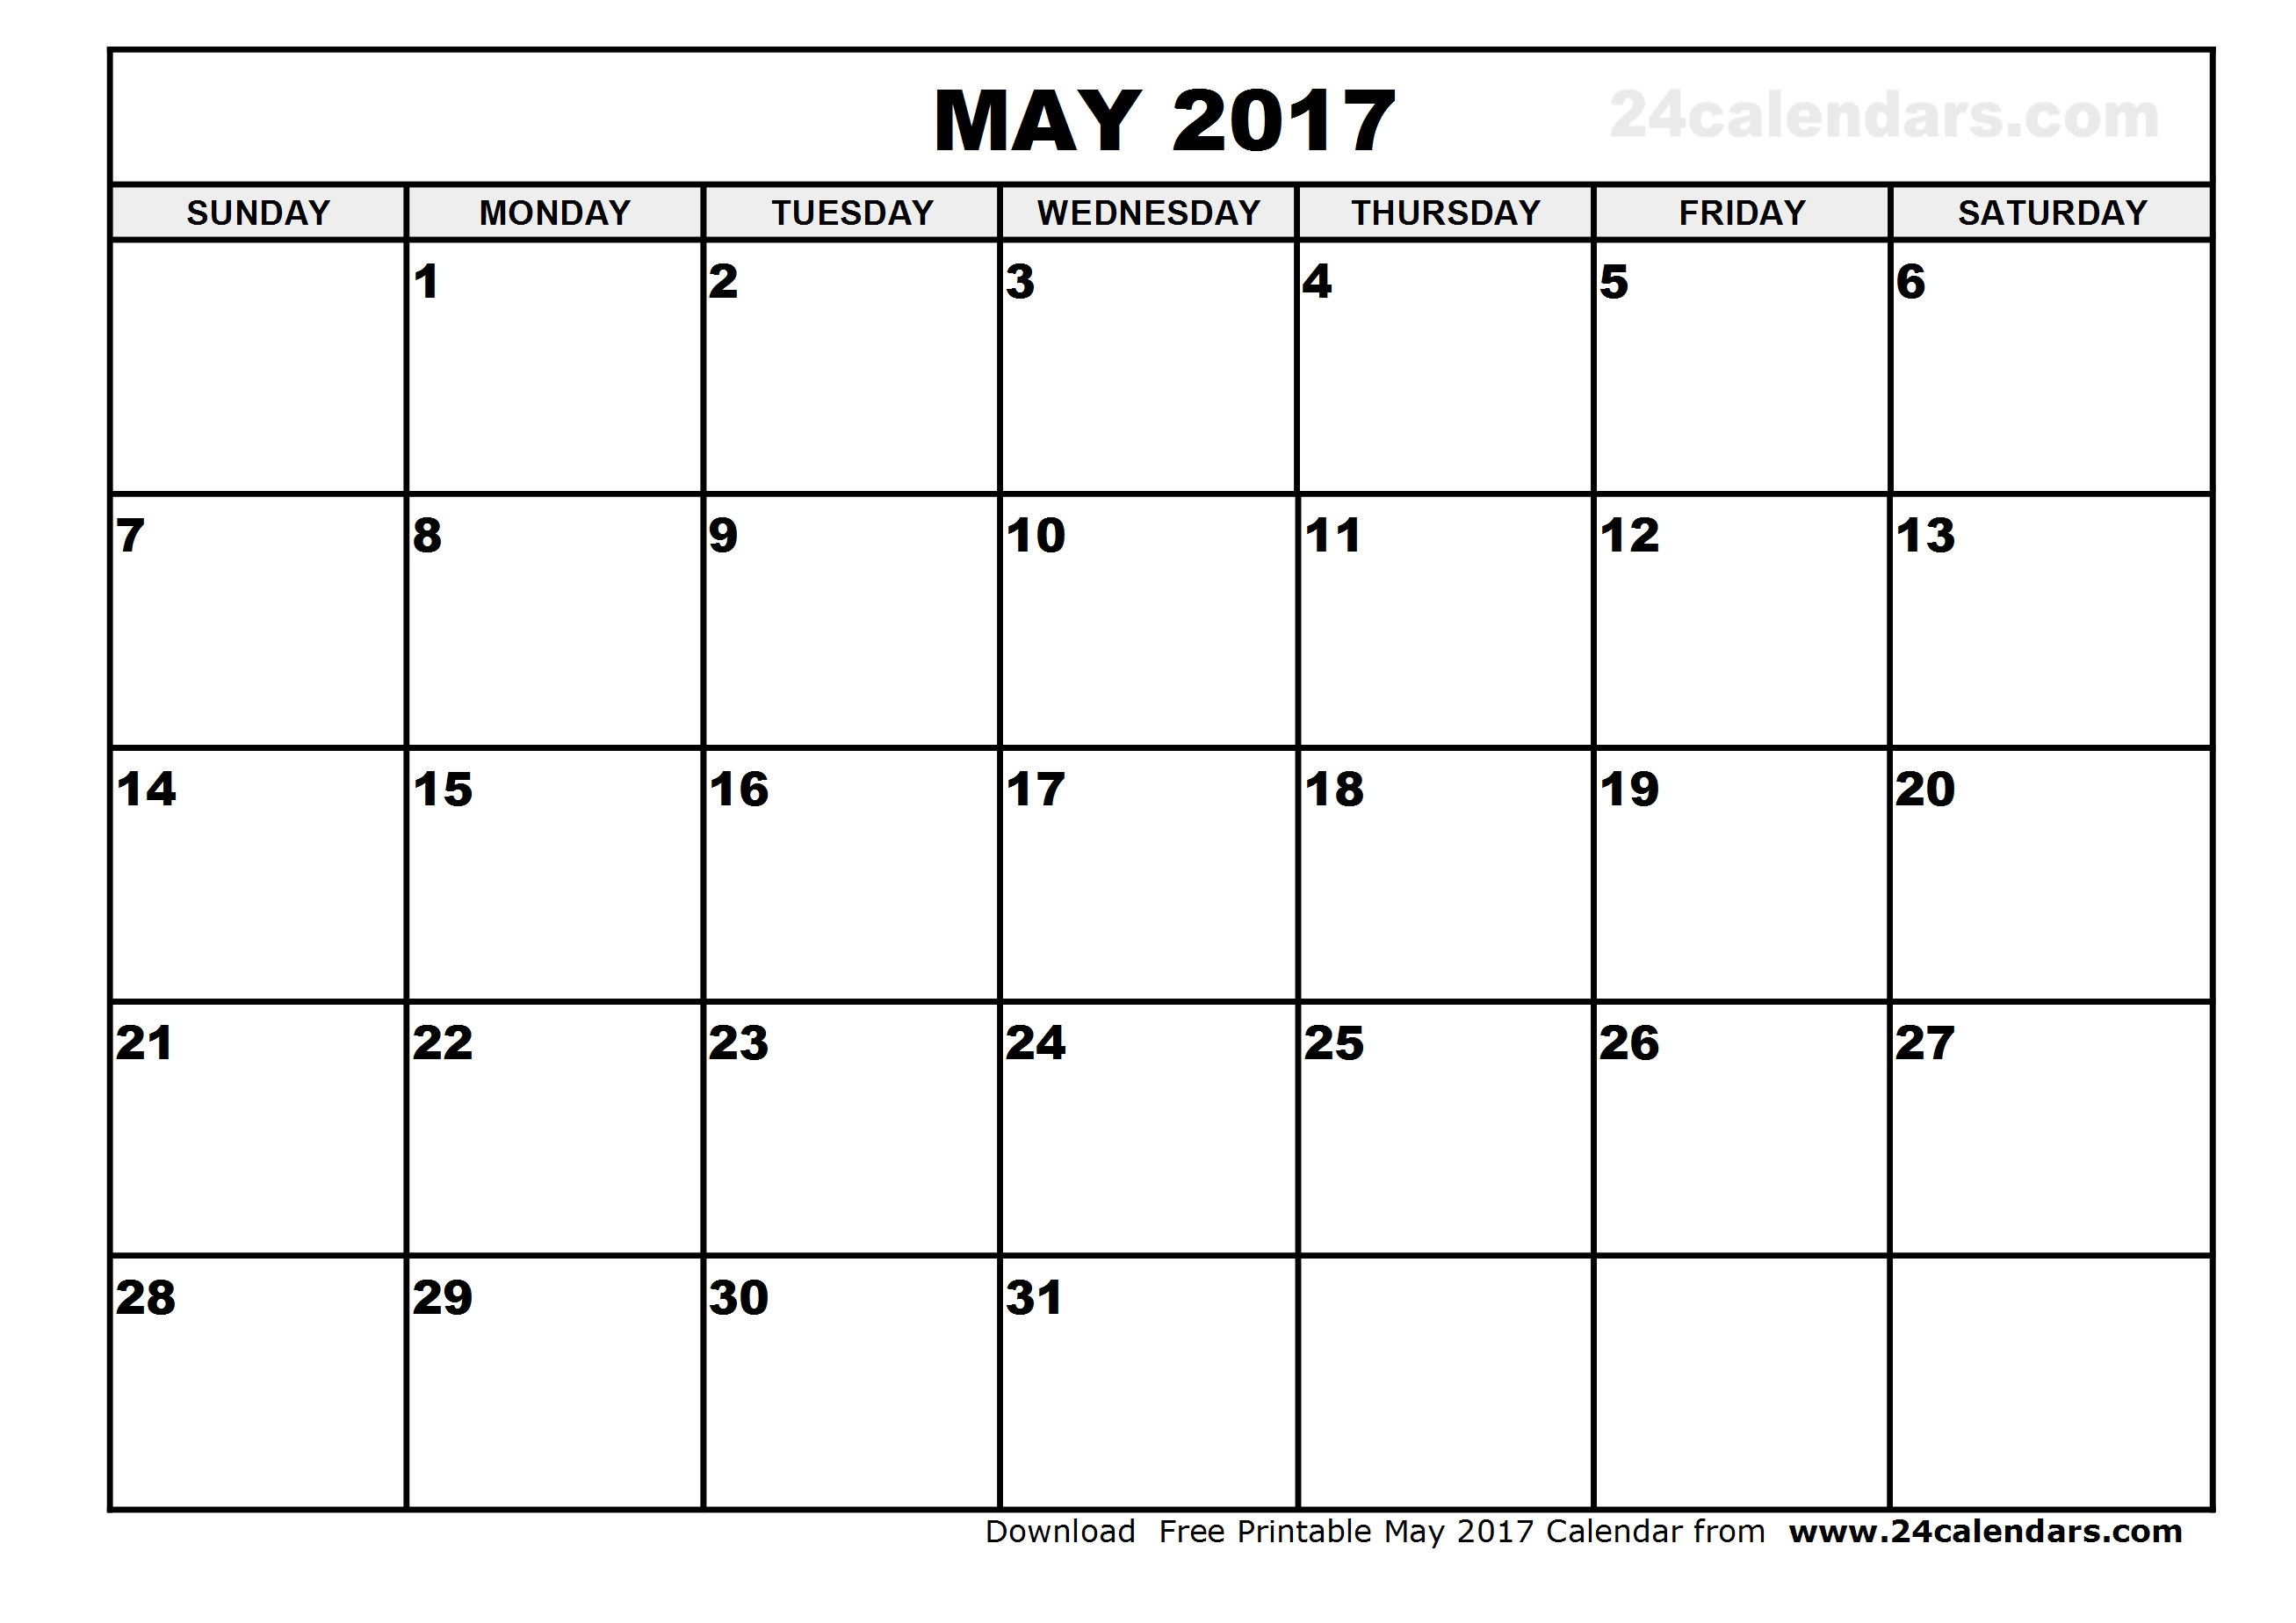 Monthly calendar clipart may clip art freeuse stock May 2017 Calendar Clipart clip art freeuse stock